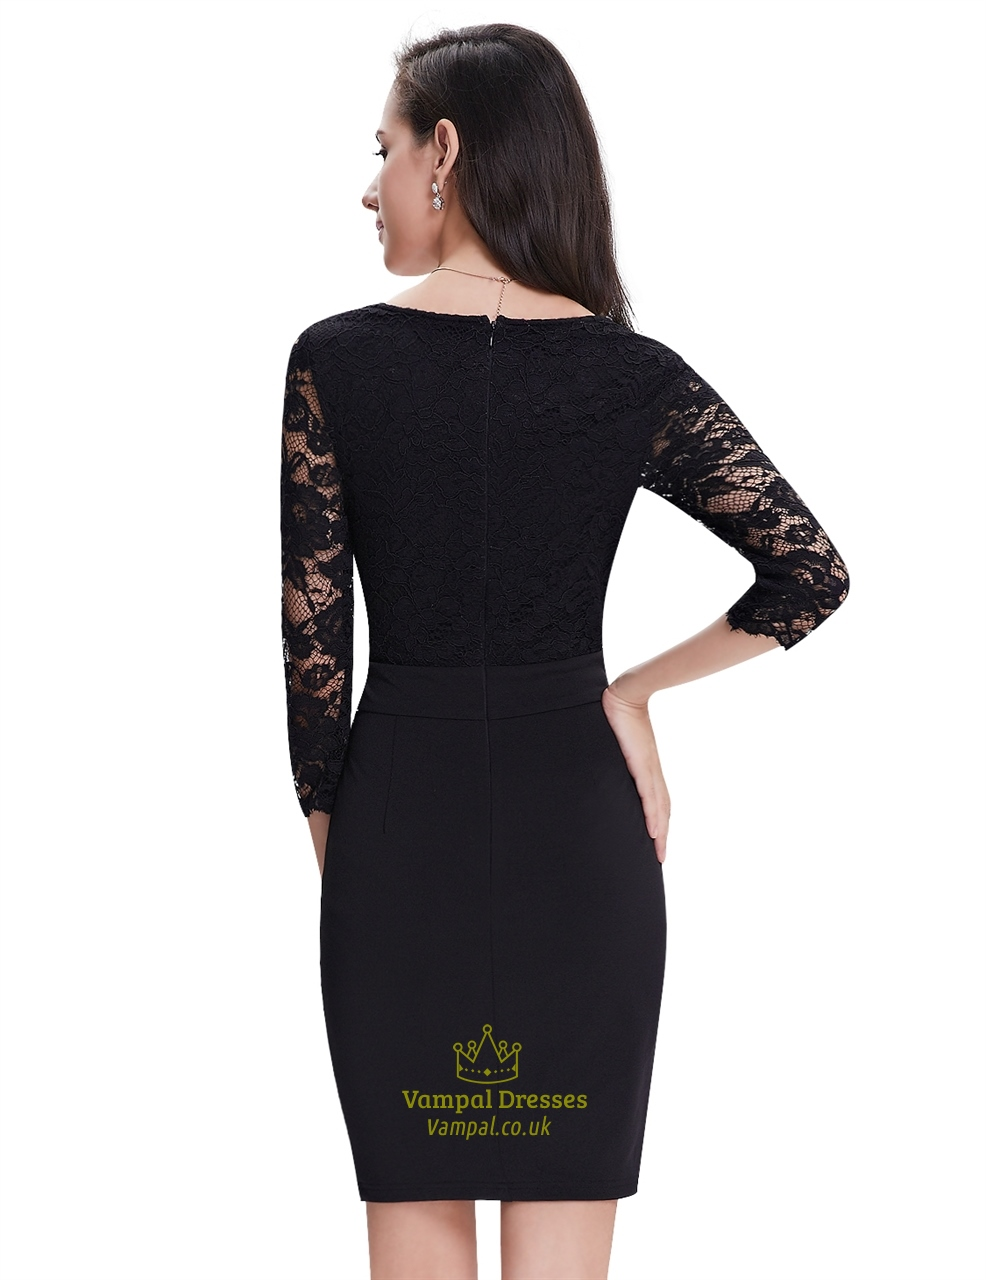 Black dresses with lace sleeves